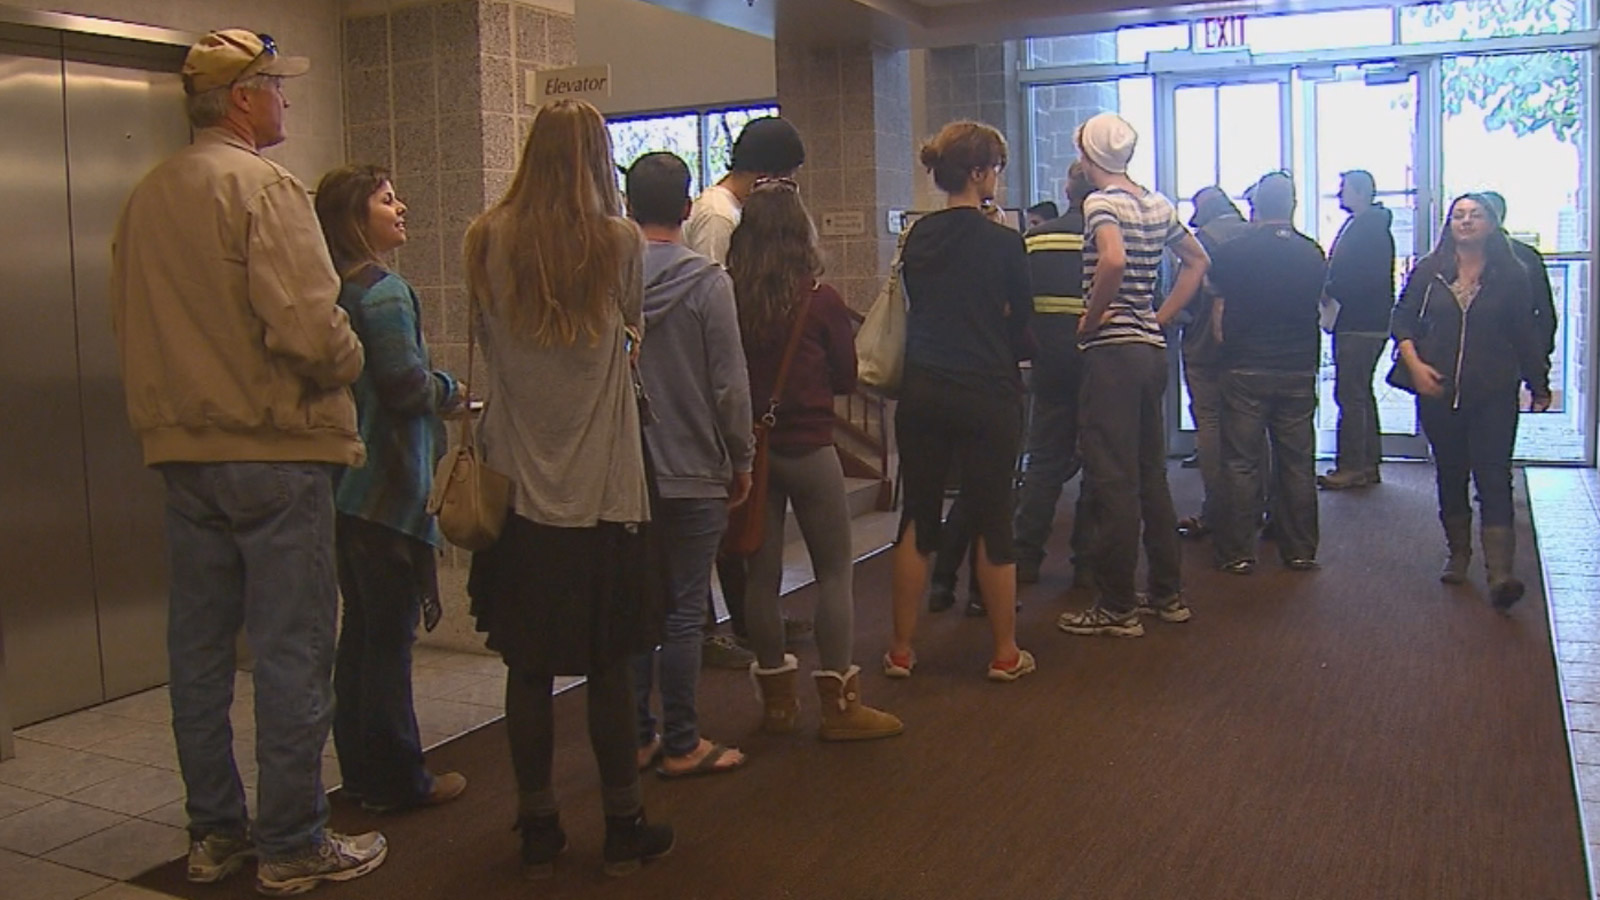 Voters in Boulder lined up to cast their ballots (credit: CBS)